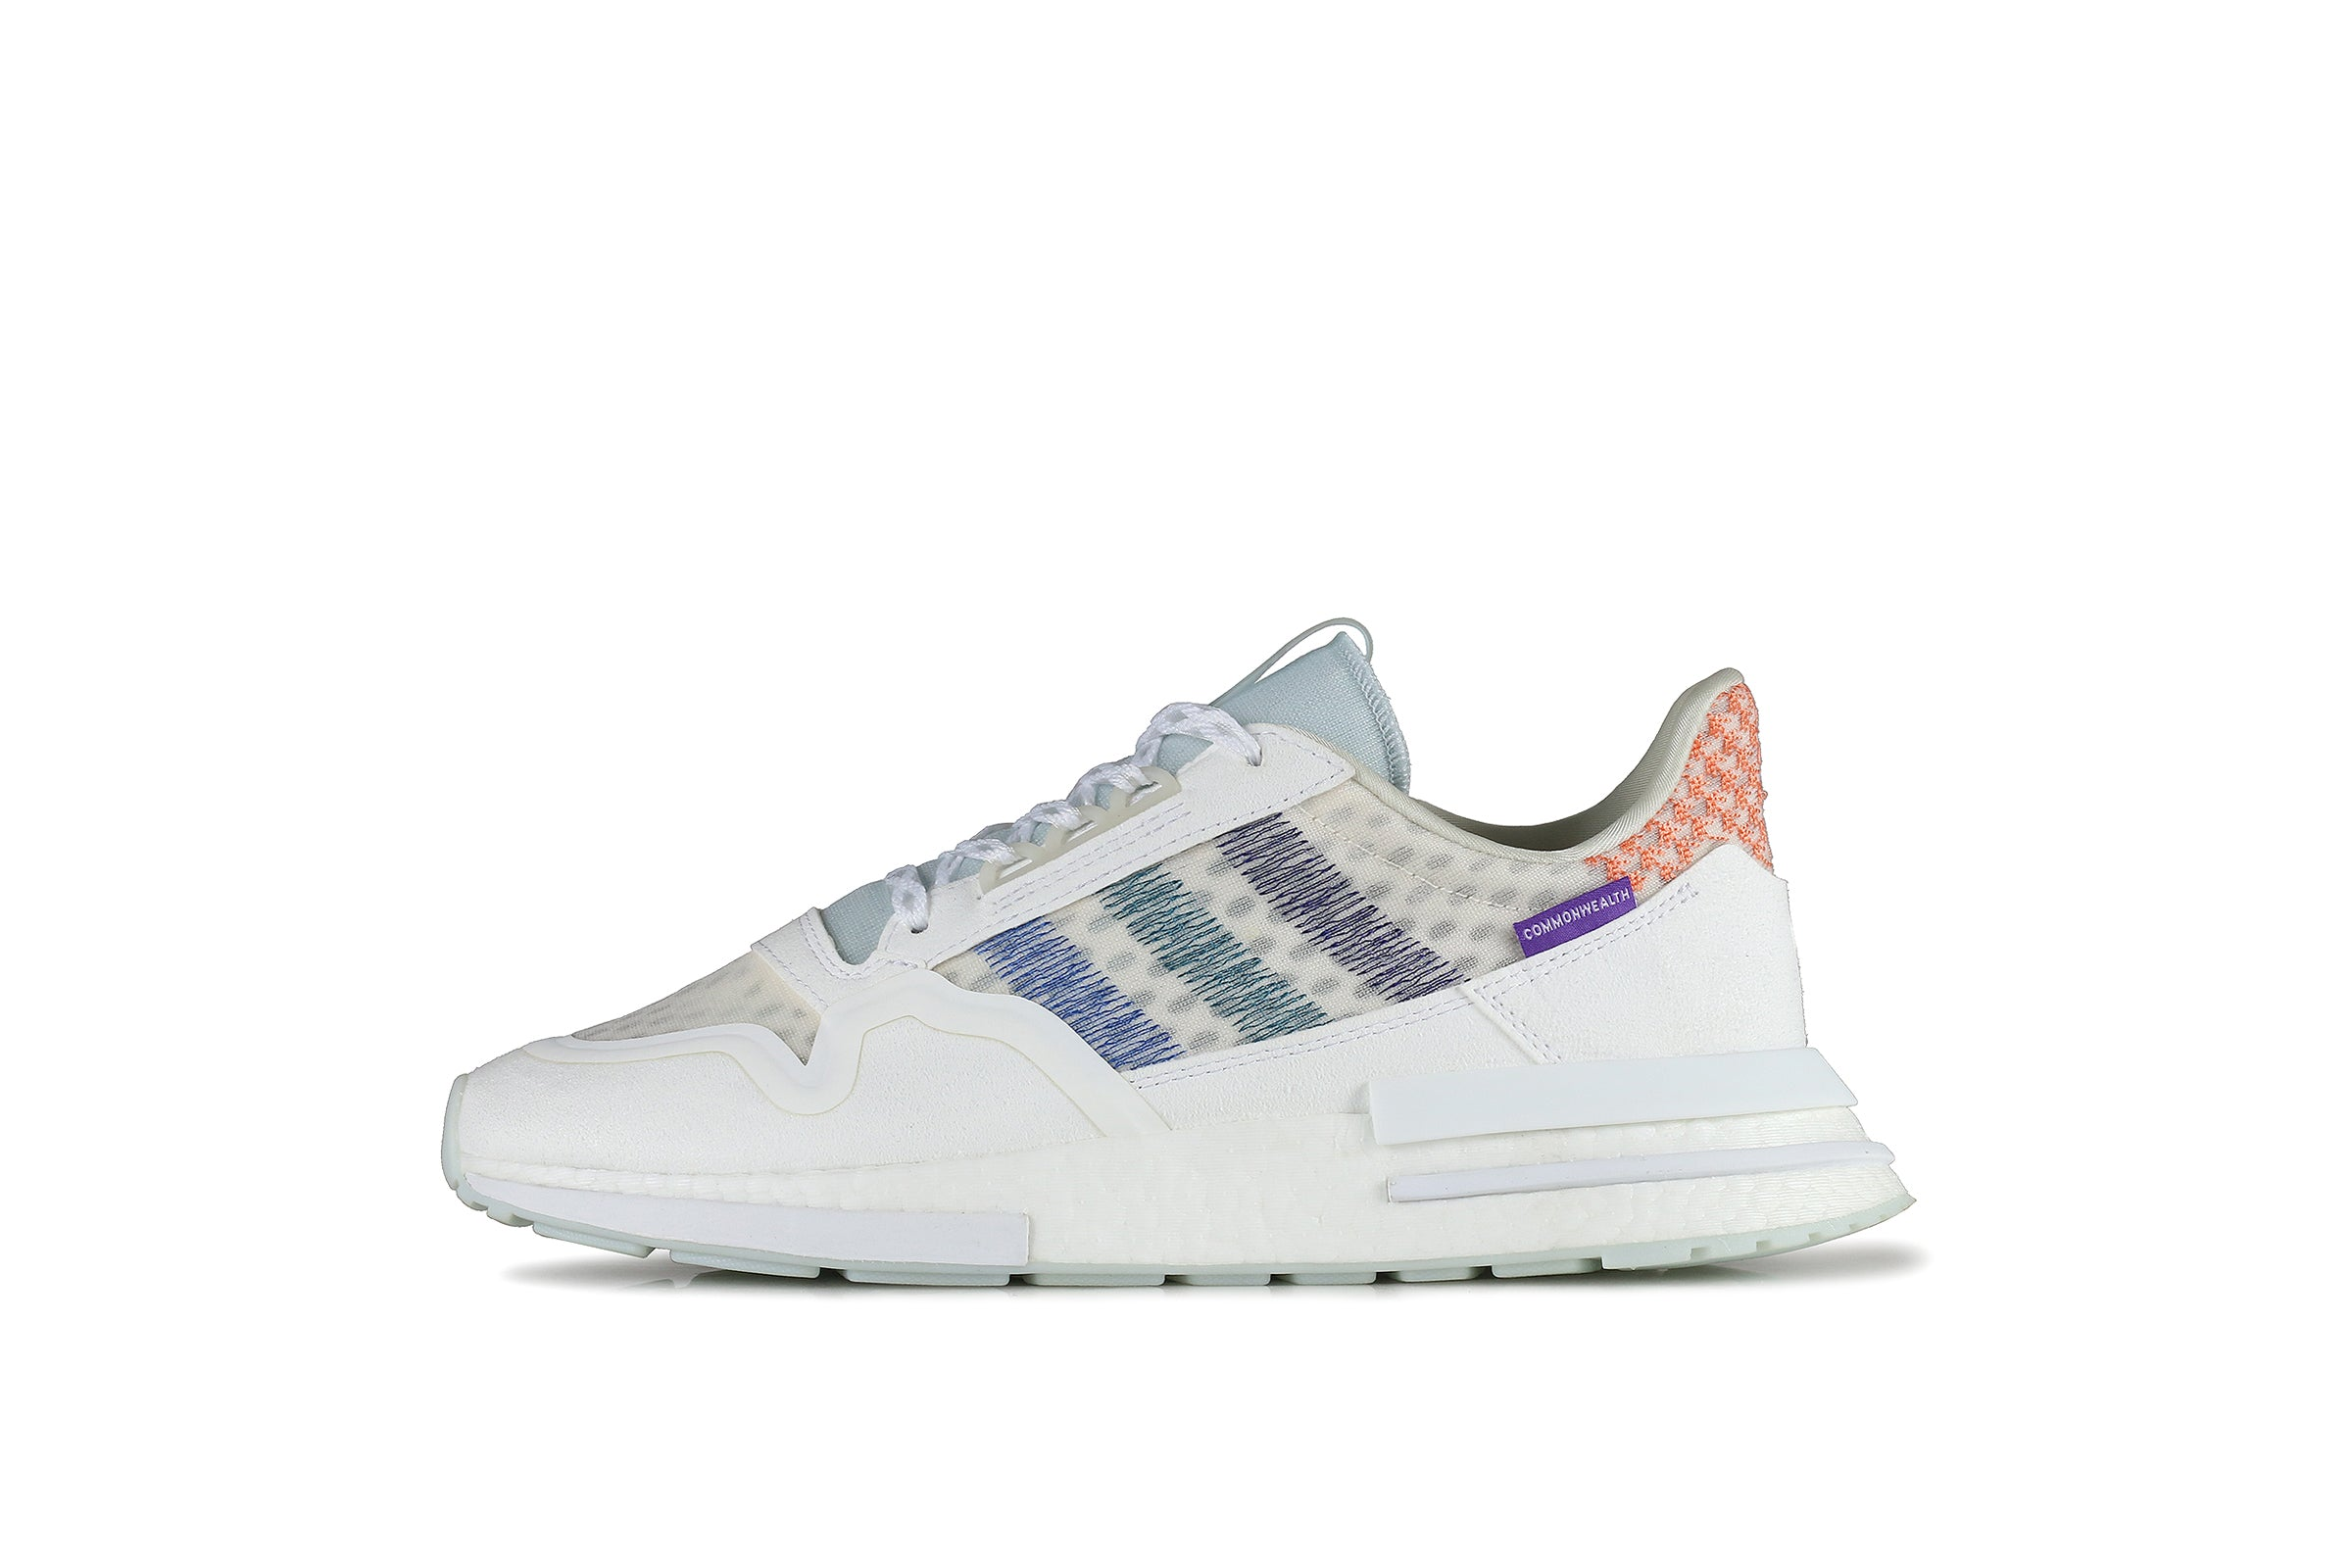 Adidas ZX 500 RM x Commonwealth